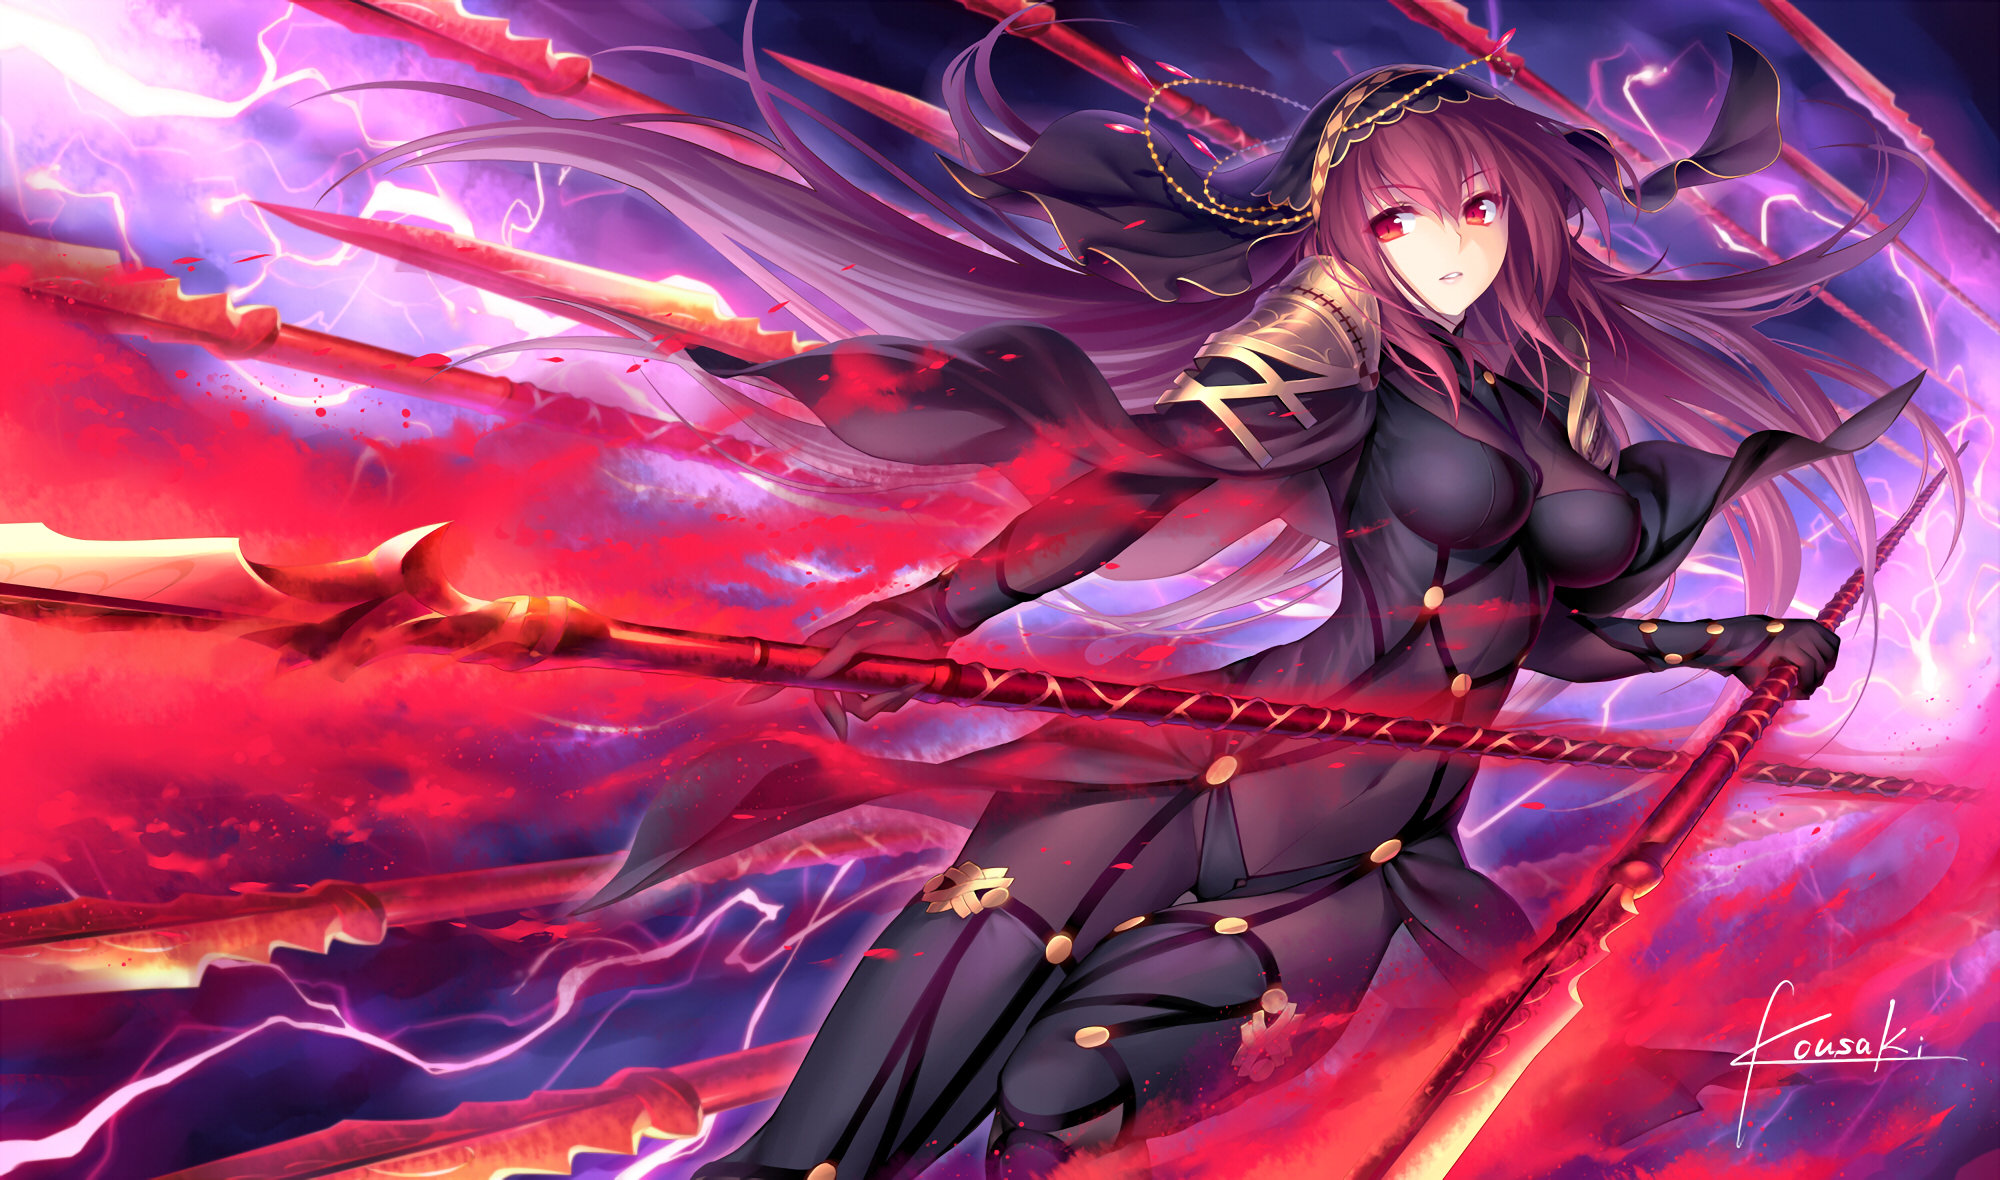 2402 Fate Grand Order Hd Wallpapers Background Images